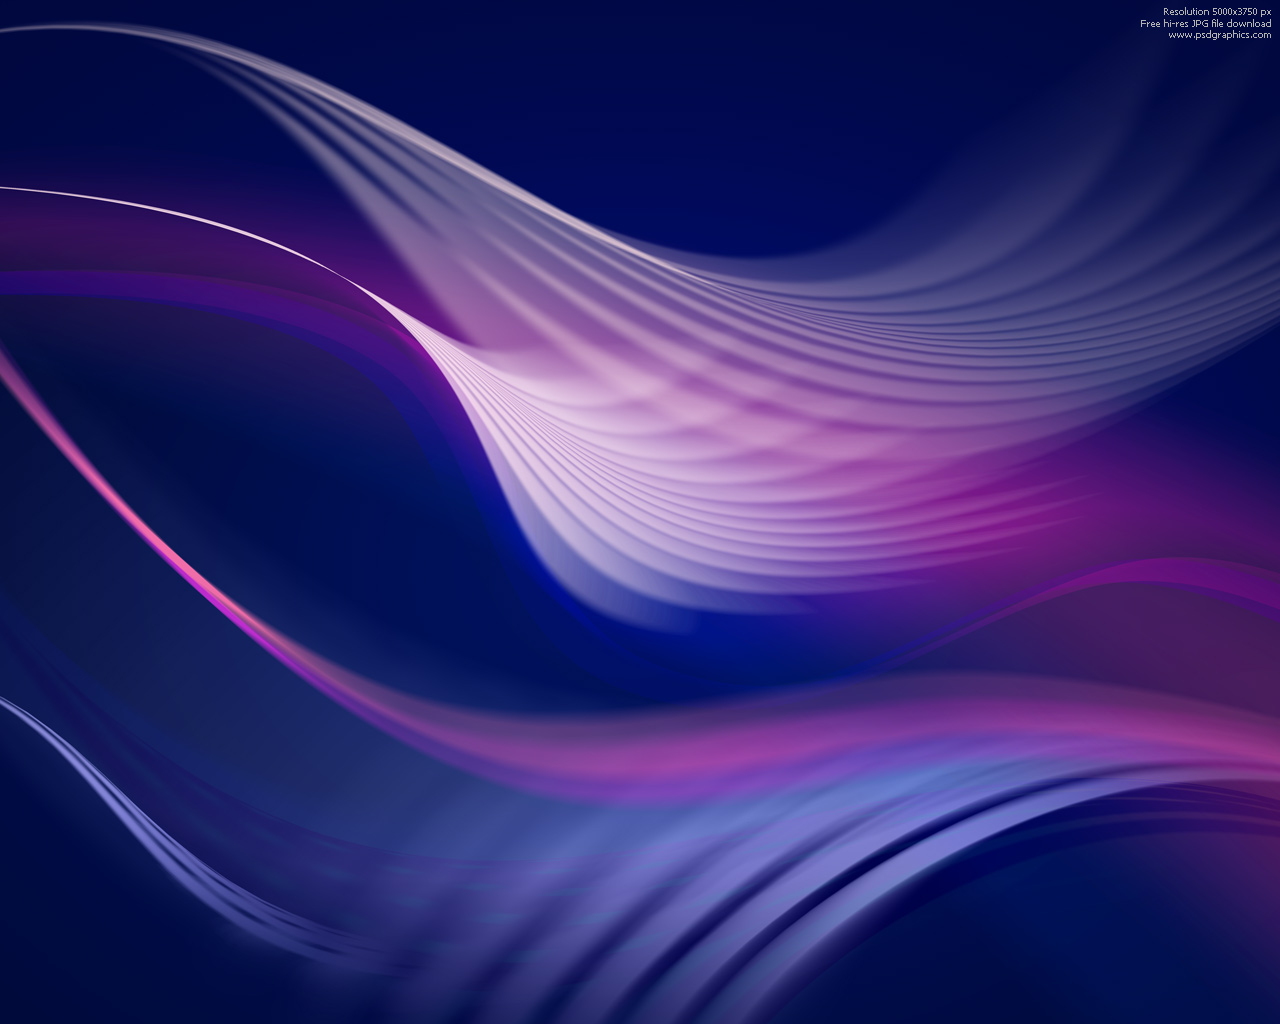 ... abstract backgrounds photoshop effects digital background motion